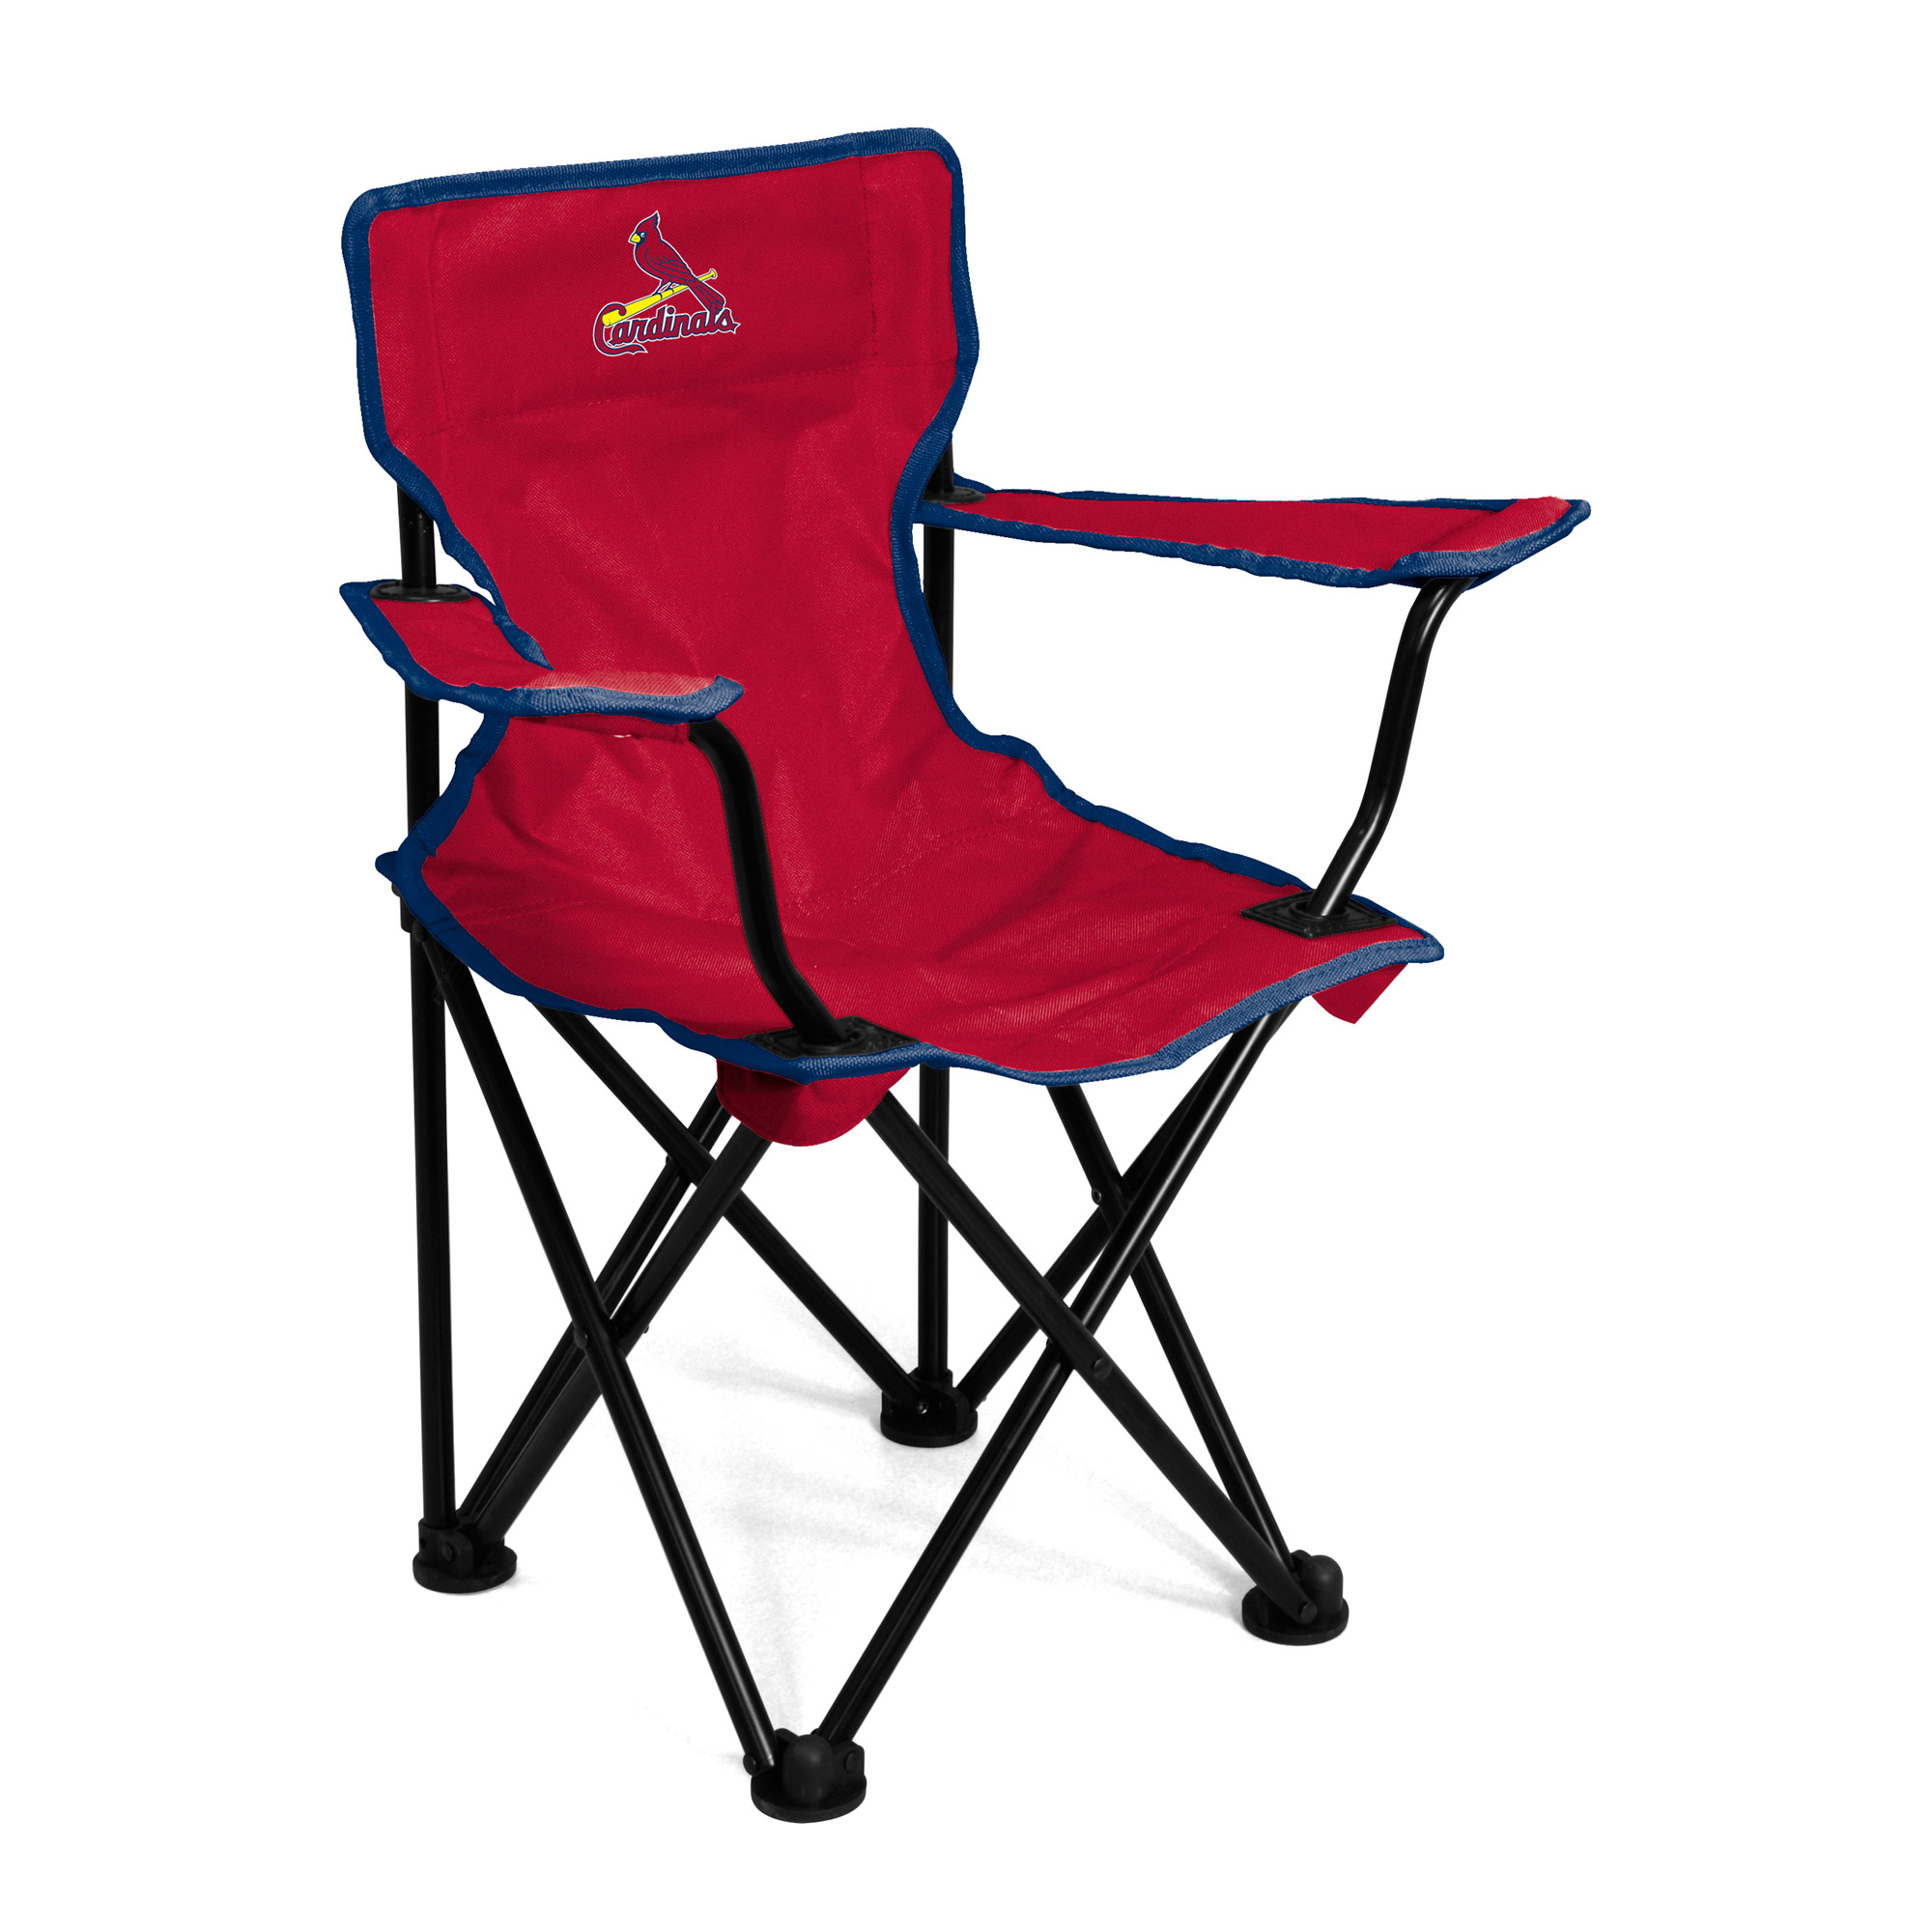 St. Louis Cardinals Toddler Chair - No Size